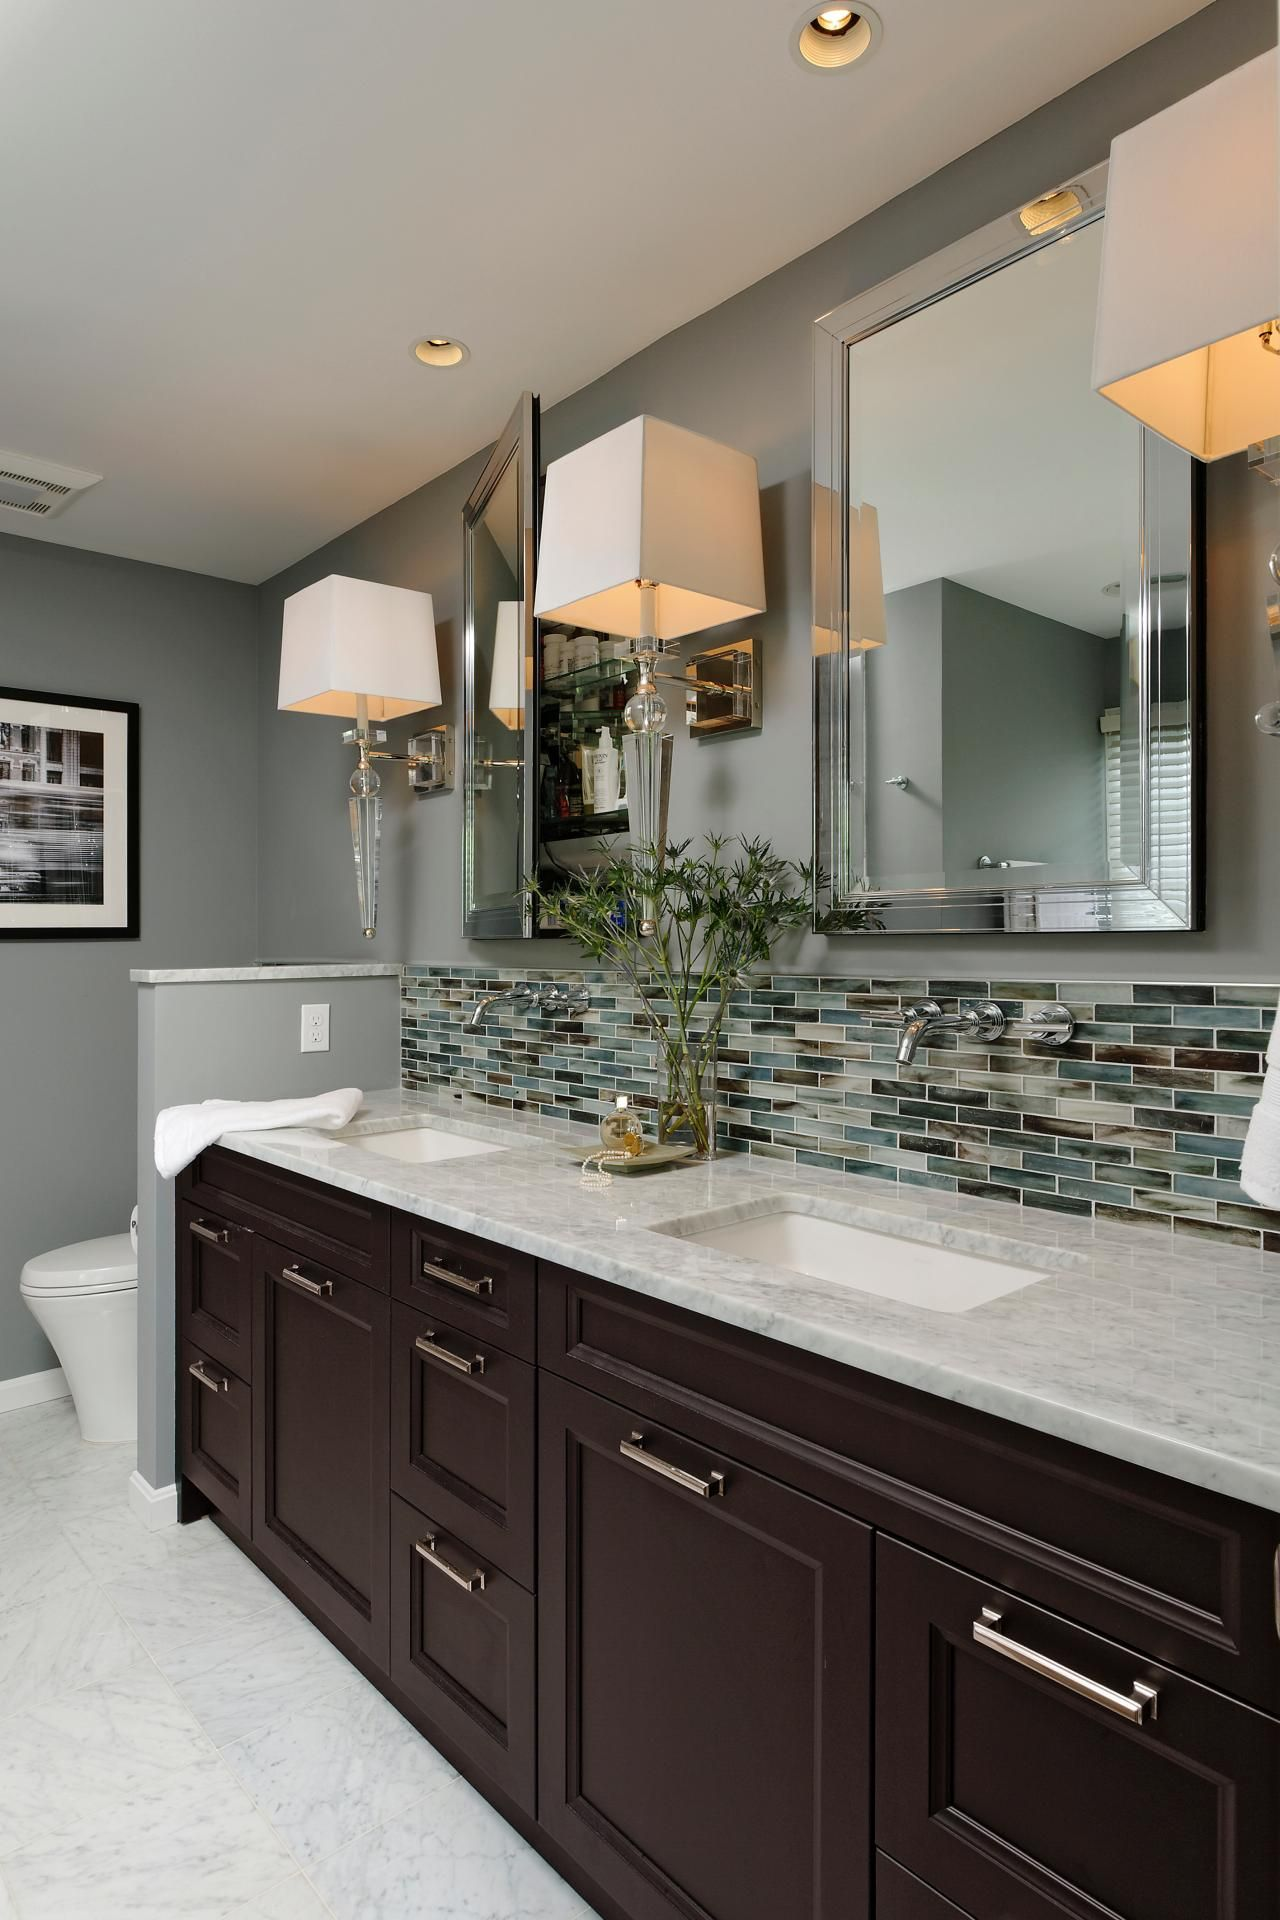 This Gray Contemporary Bathroom Features A Double Vanity Design With A  Carrera Marble Countertop,